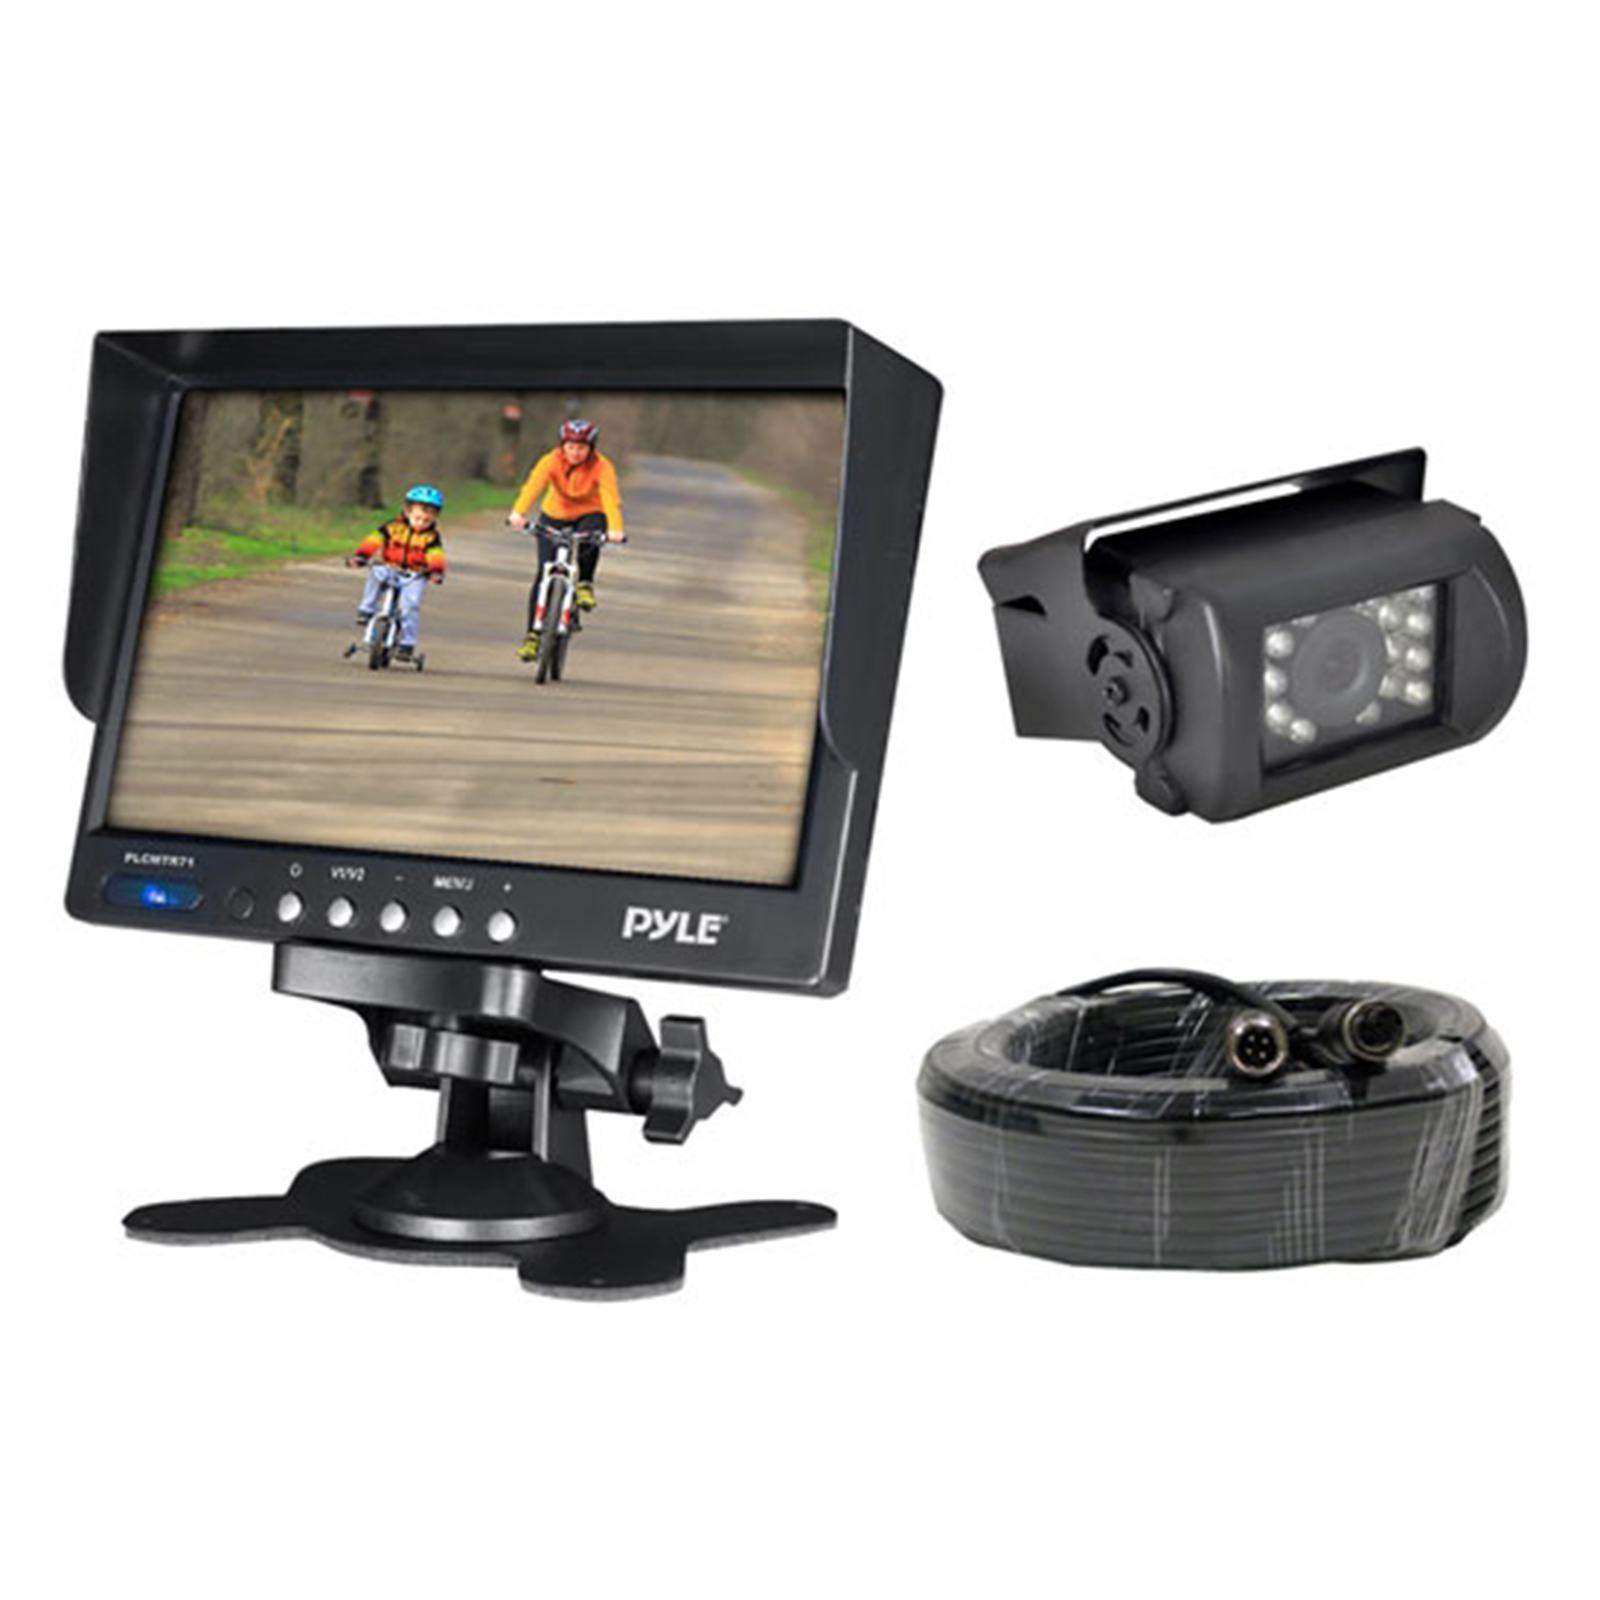 "Pyle Weatherproof Rearview Backup Camera & Monitor Video System, Commercial Grade, 7"" Monitor"